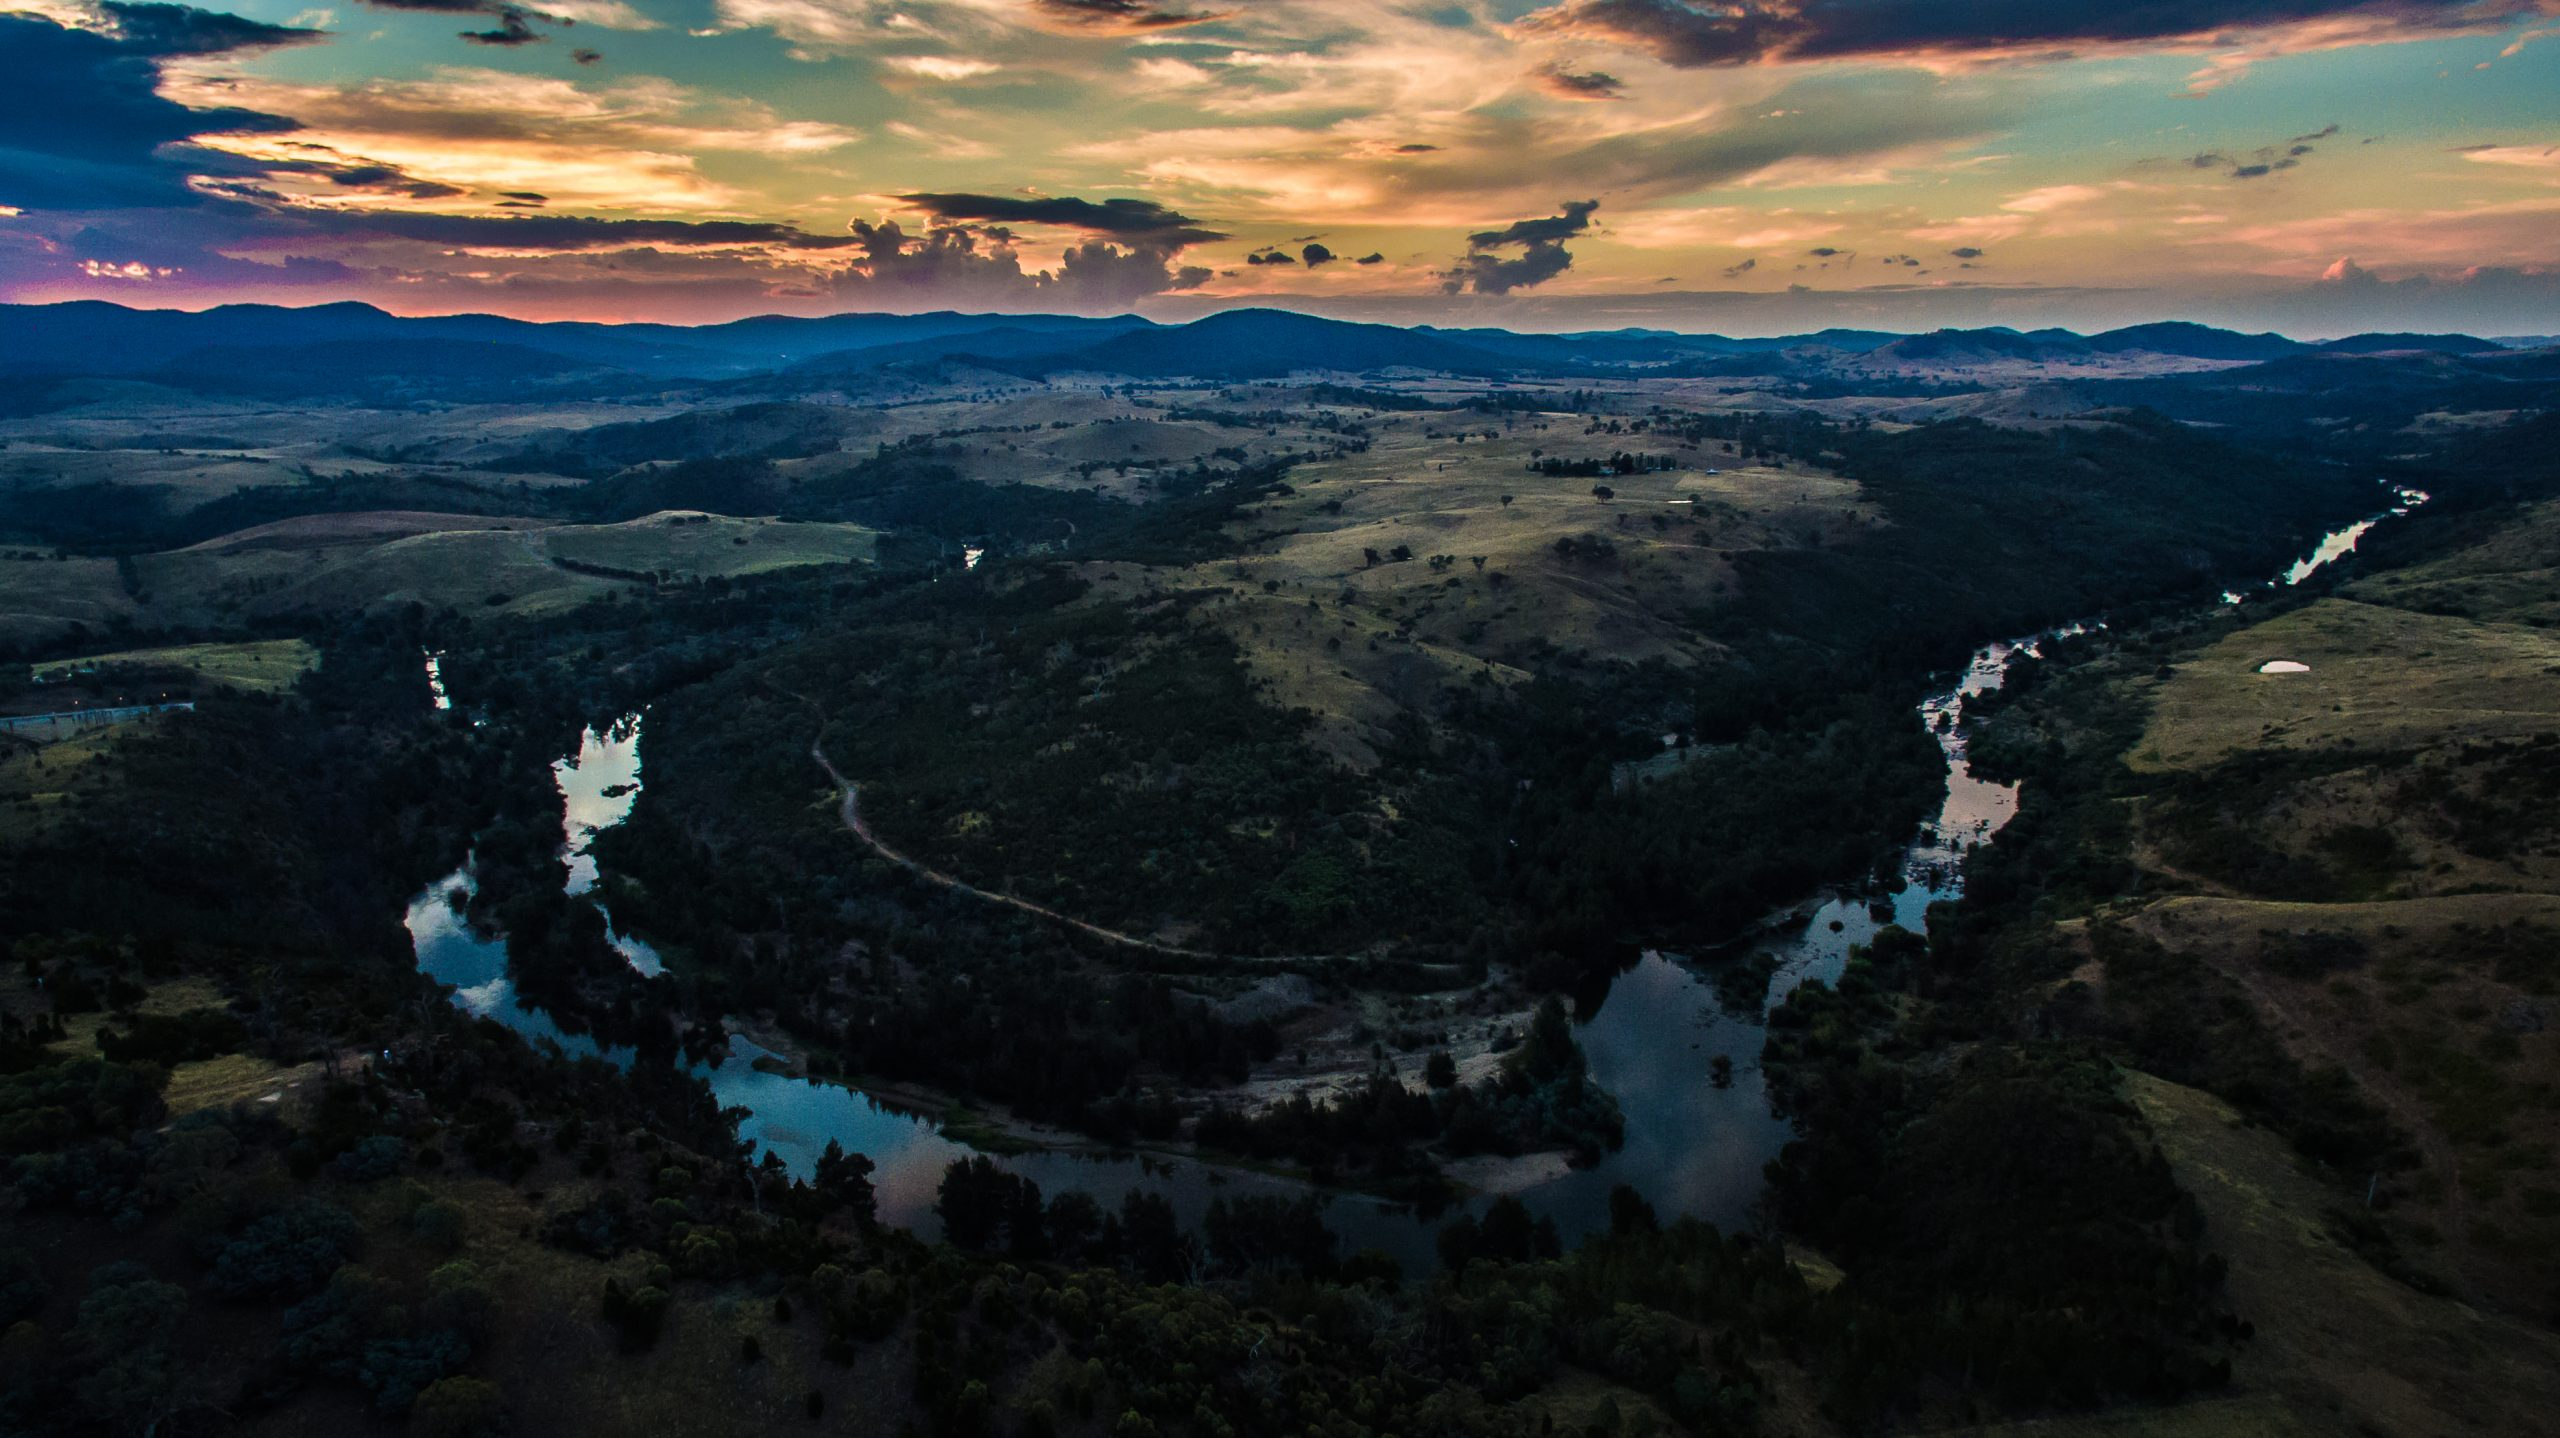 Aerial drone image from Shepherds Lookout, Canberra